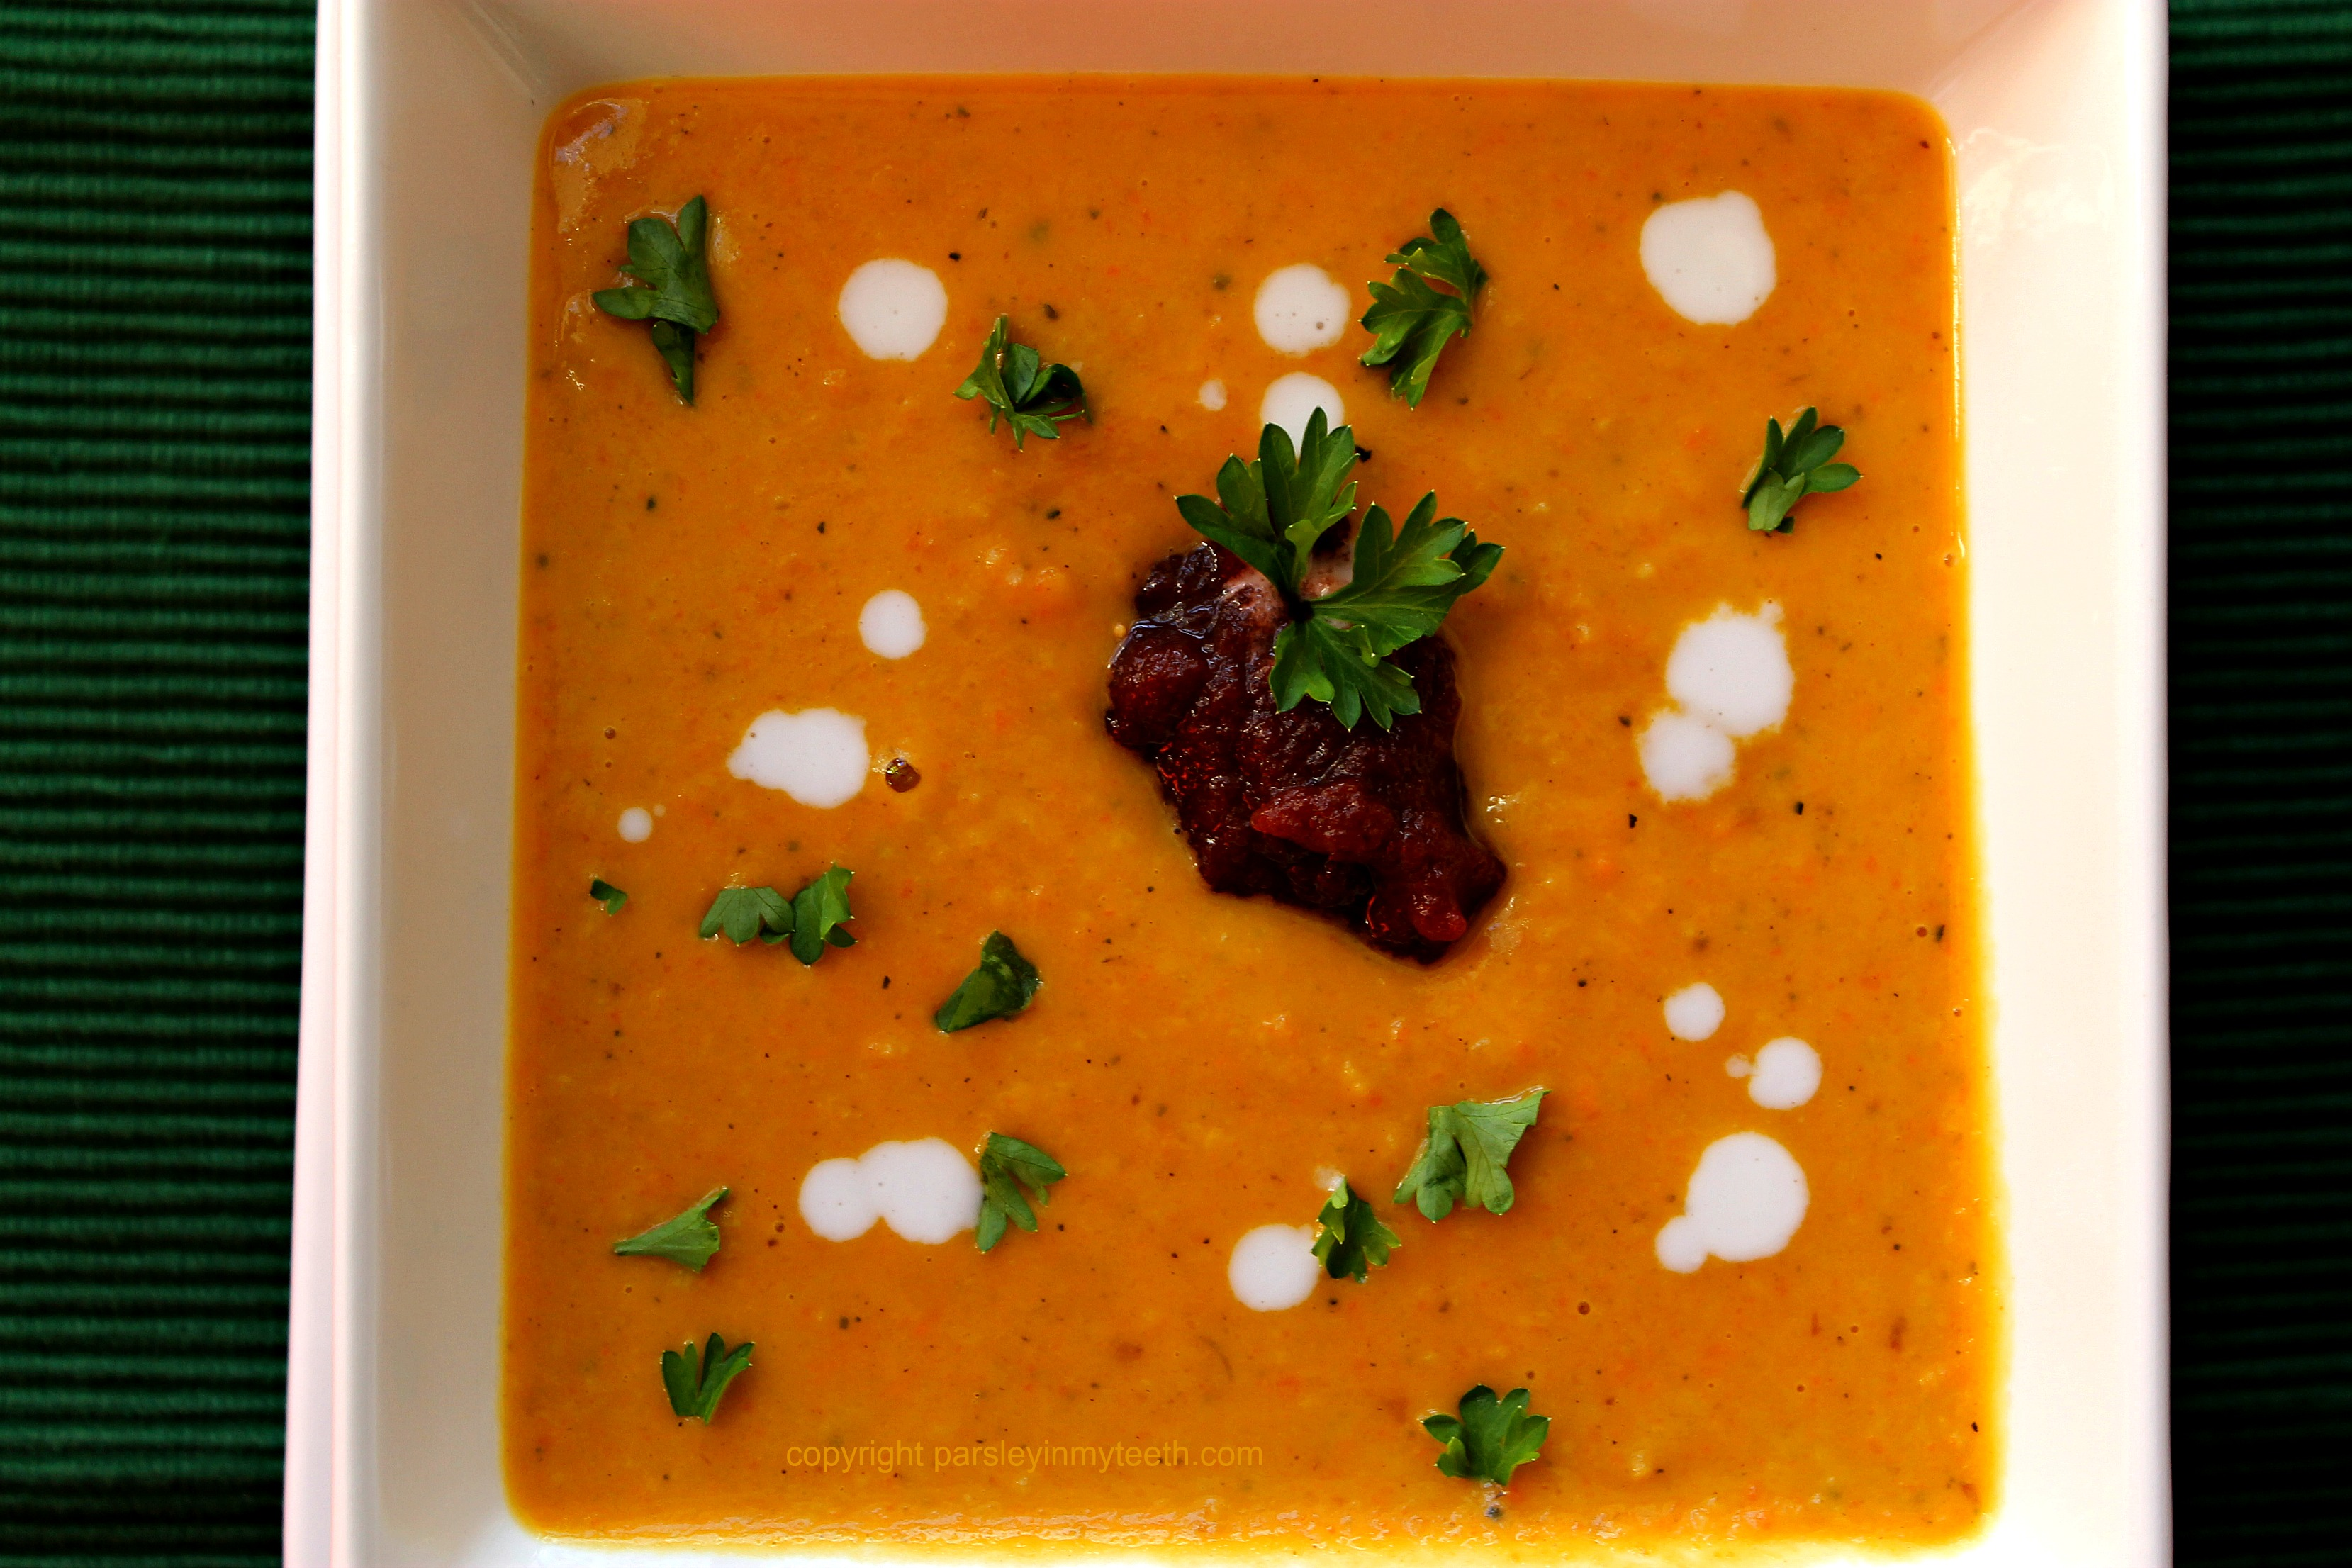 Beet Soup In Roasted Acorn Squash Recipes — Dishmaps